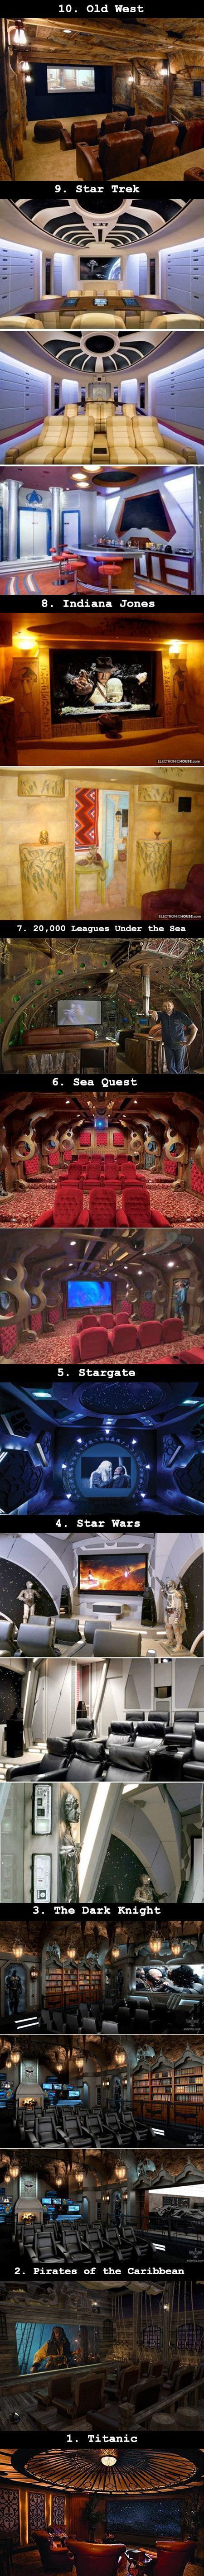 10 Mind-Blowing Home Theaters That Dreams Are Made Of